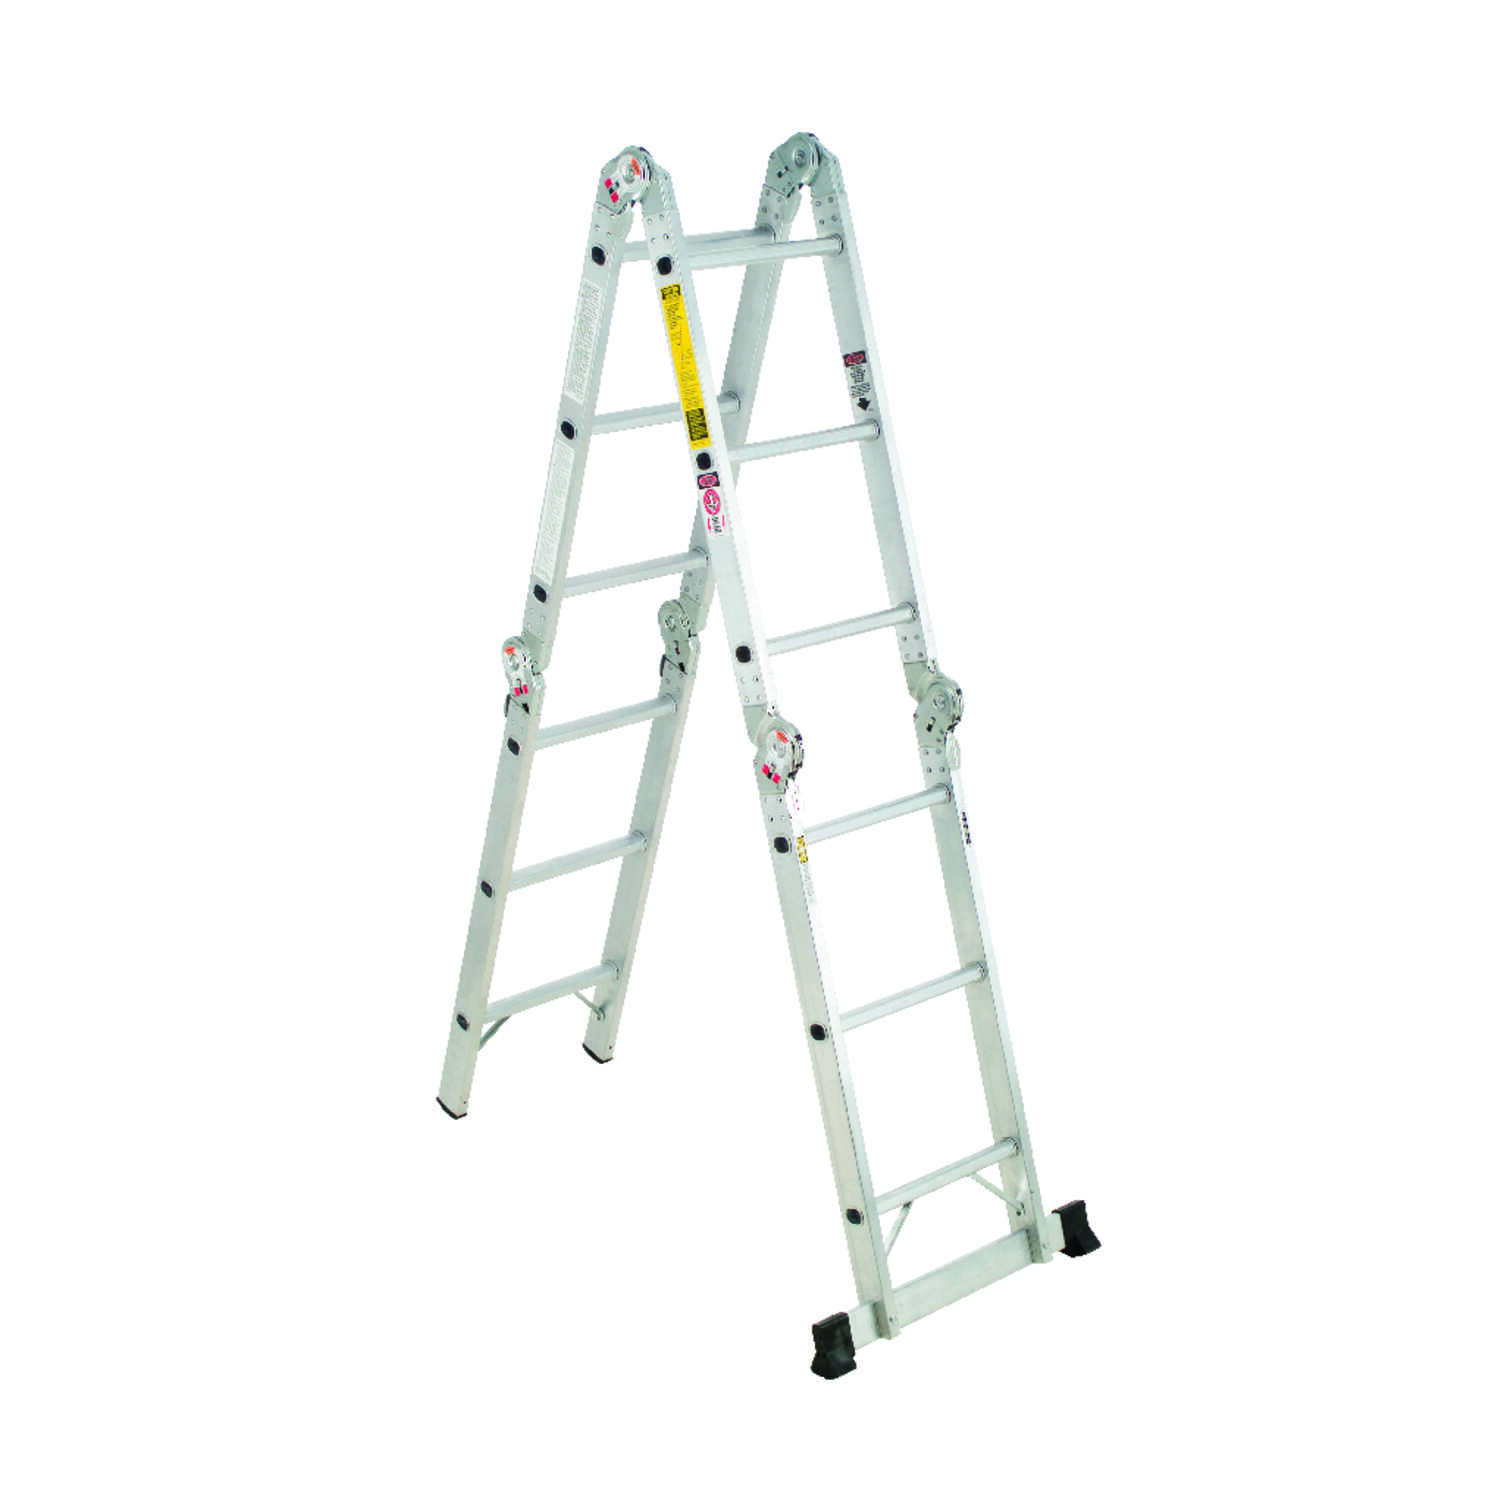 Werner  12 ft. H x 15 in. W Aluminum  Articulating Ladder  Type IA  300 lb.